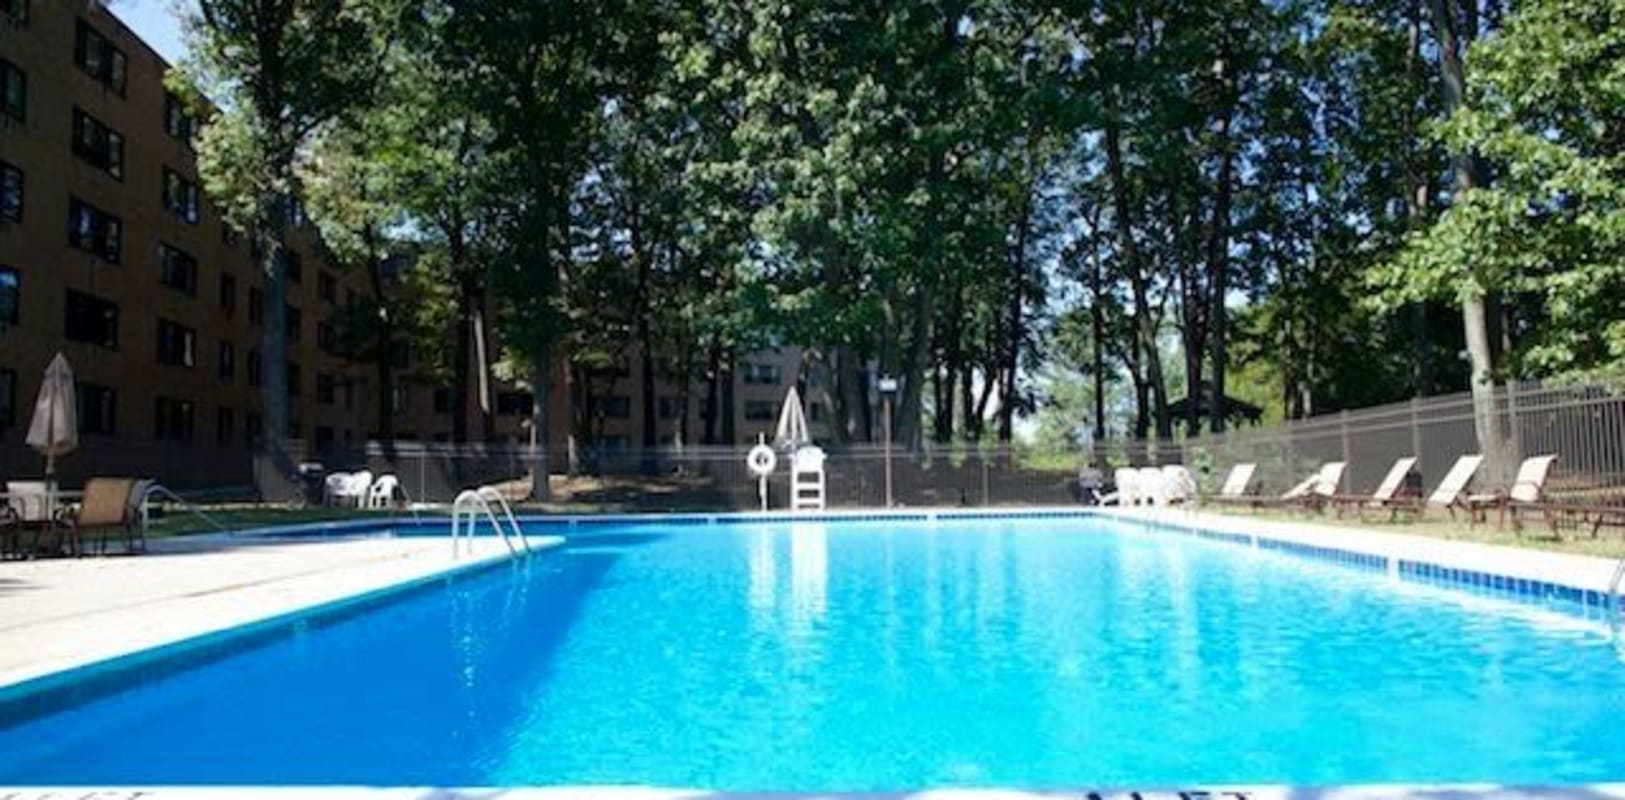 Resort-style swimming pool at Highgate in Ewing, New Jersey